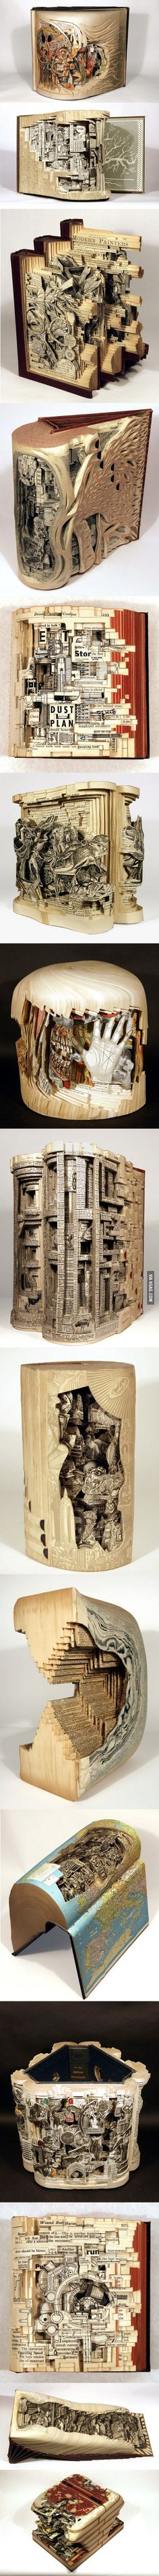 Book art - terrible thing to do to a book, but really beautiful art. Origami, Altered Books, Altered Art, Book Art, Drawn Art, Book Folding, Art Plastique, Book Crafts, Bookbinding